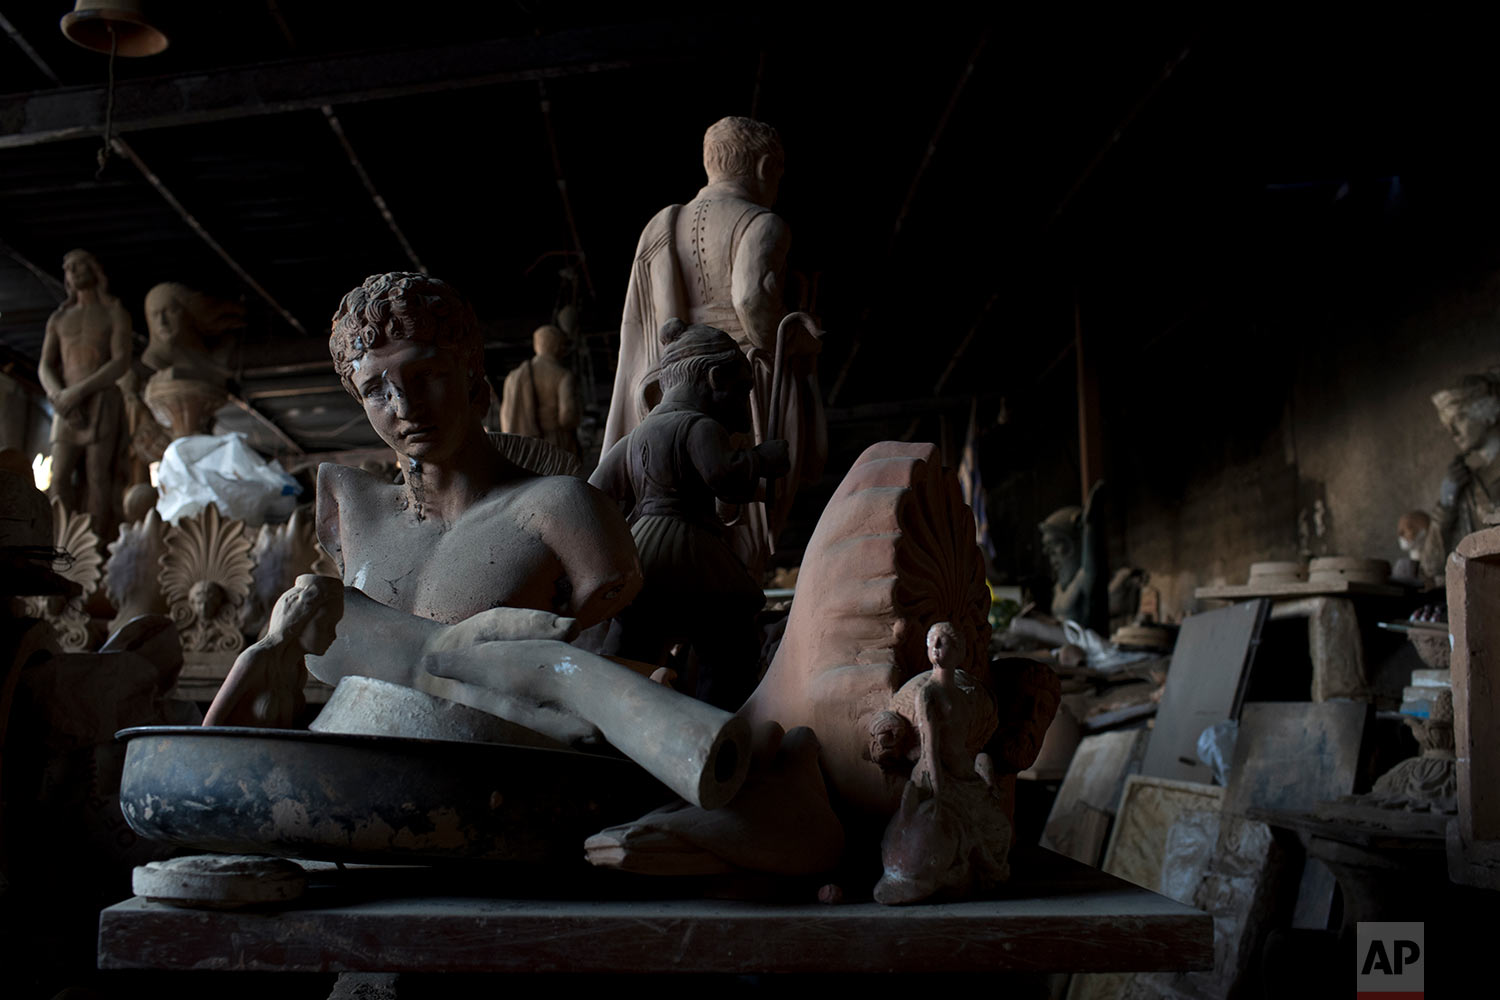 In this Friday, Oct. 13, 2017 photo, the bust of the ancient Greek messenger of the gods, Hermes, left, stands among other statues and antefixes in Haralambos Goumas' sculpture and ceramic workshop, in the Egaleo suburb of Athens. (AP Photo/Petros Giannakouris)